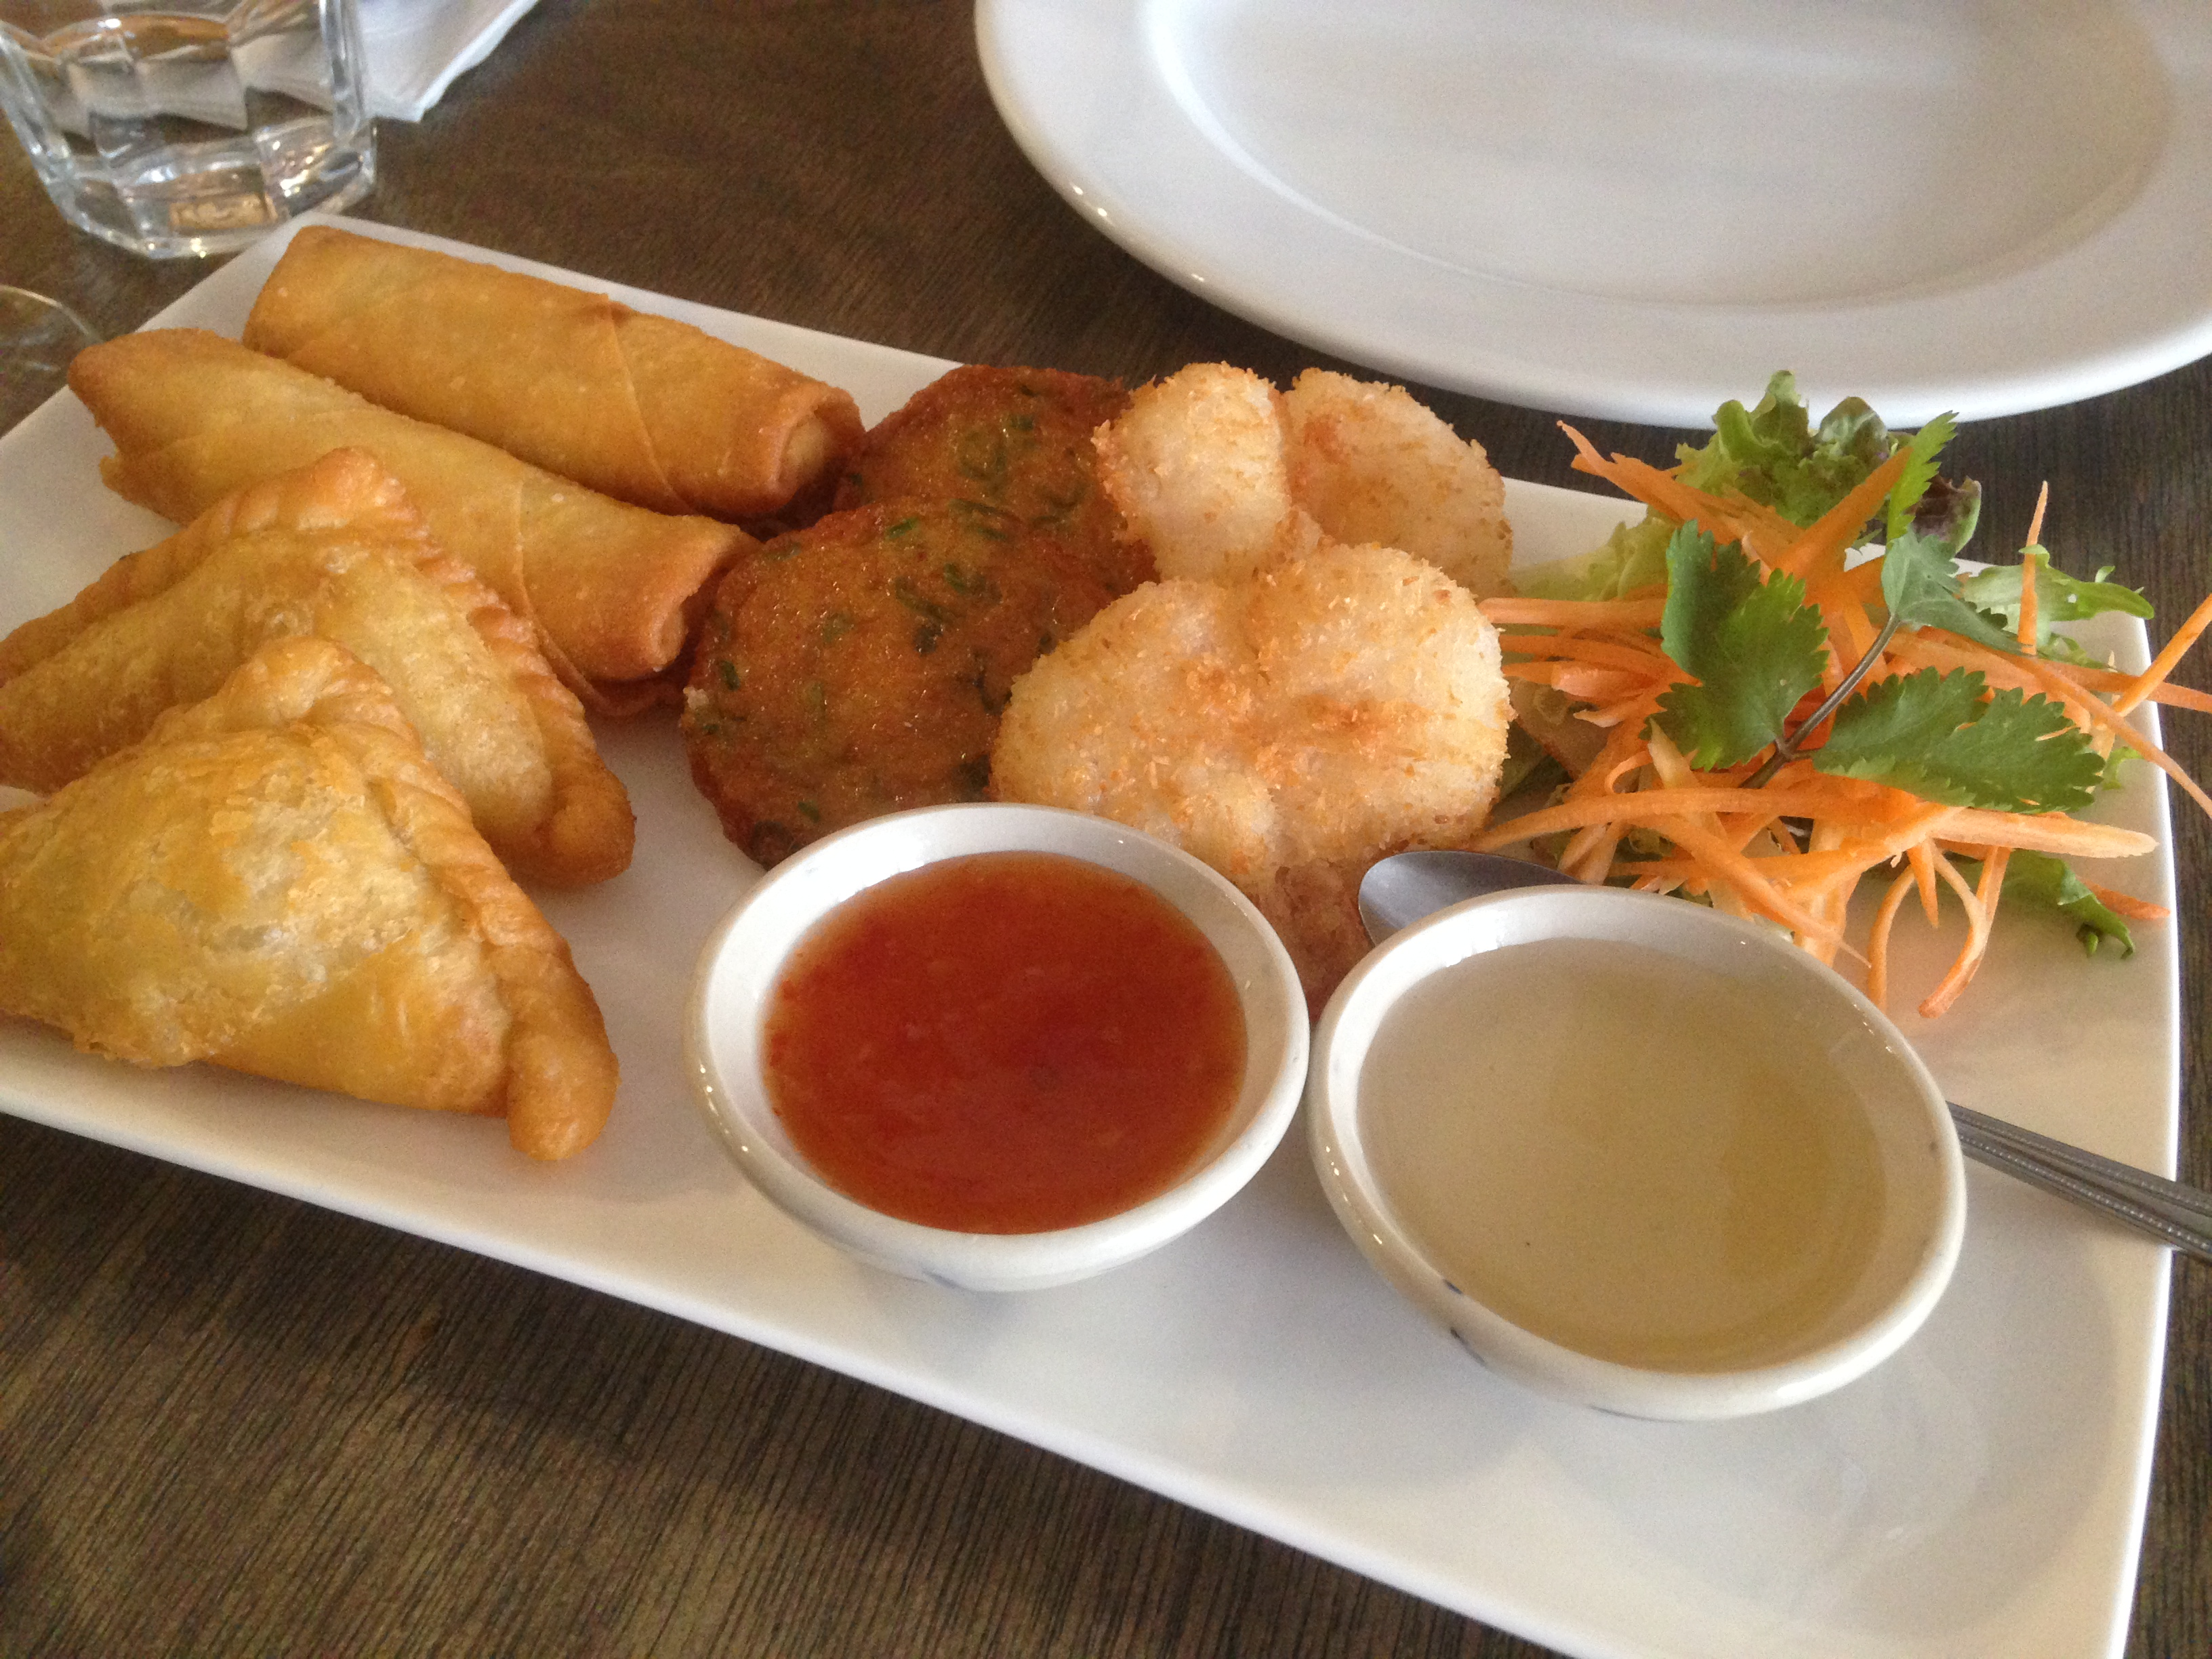 Melbourne Food Review – A blog devoted to sharing reviews of food ...